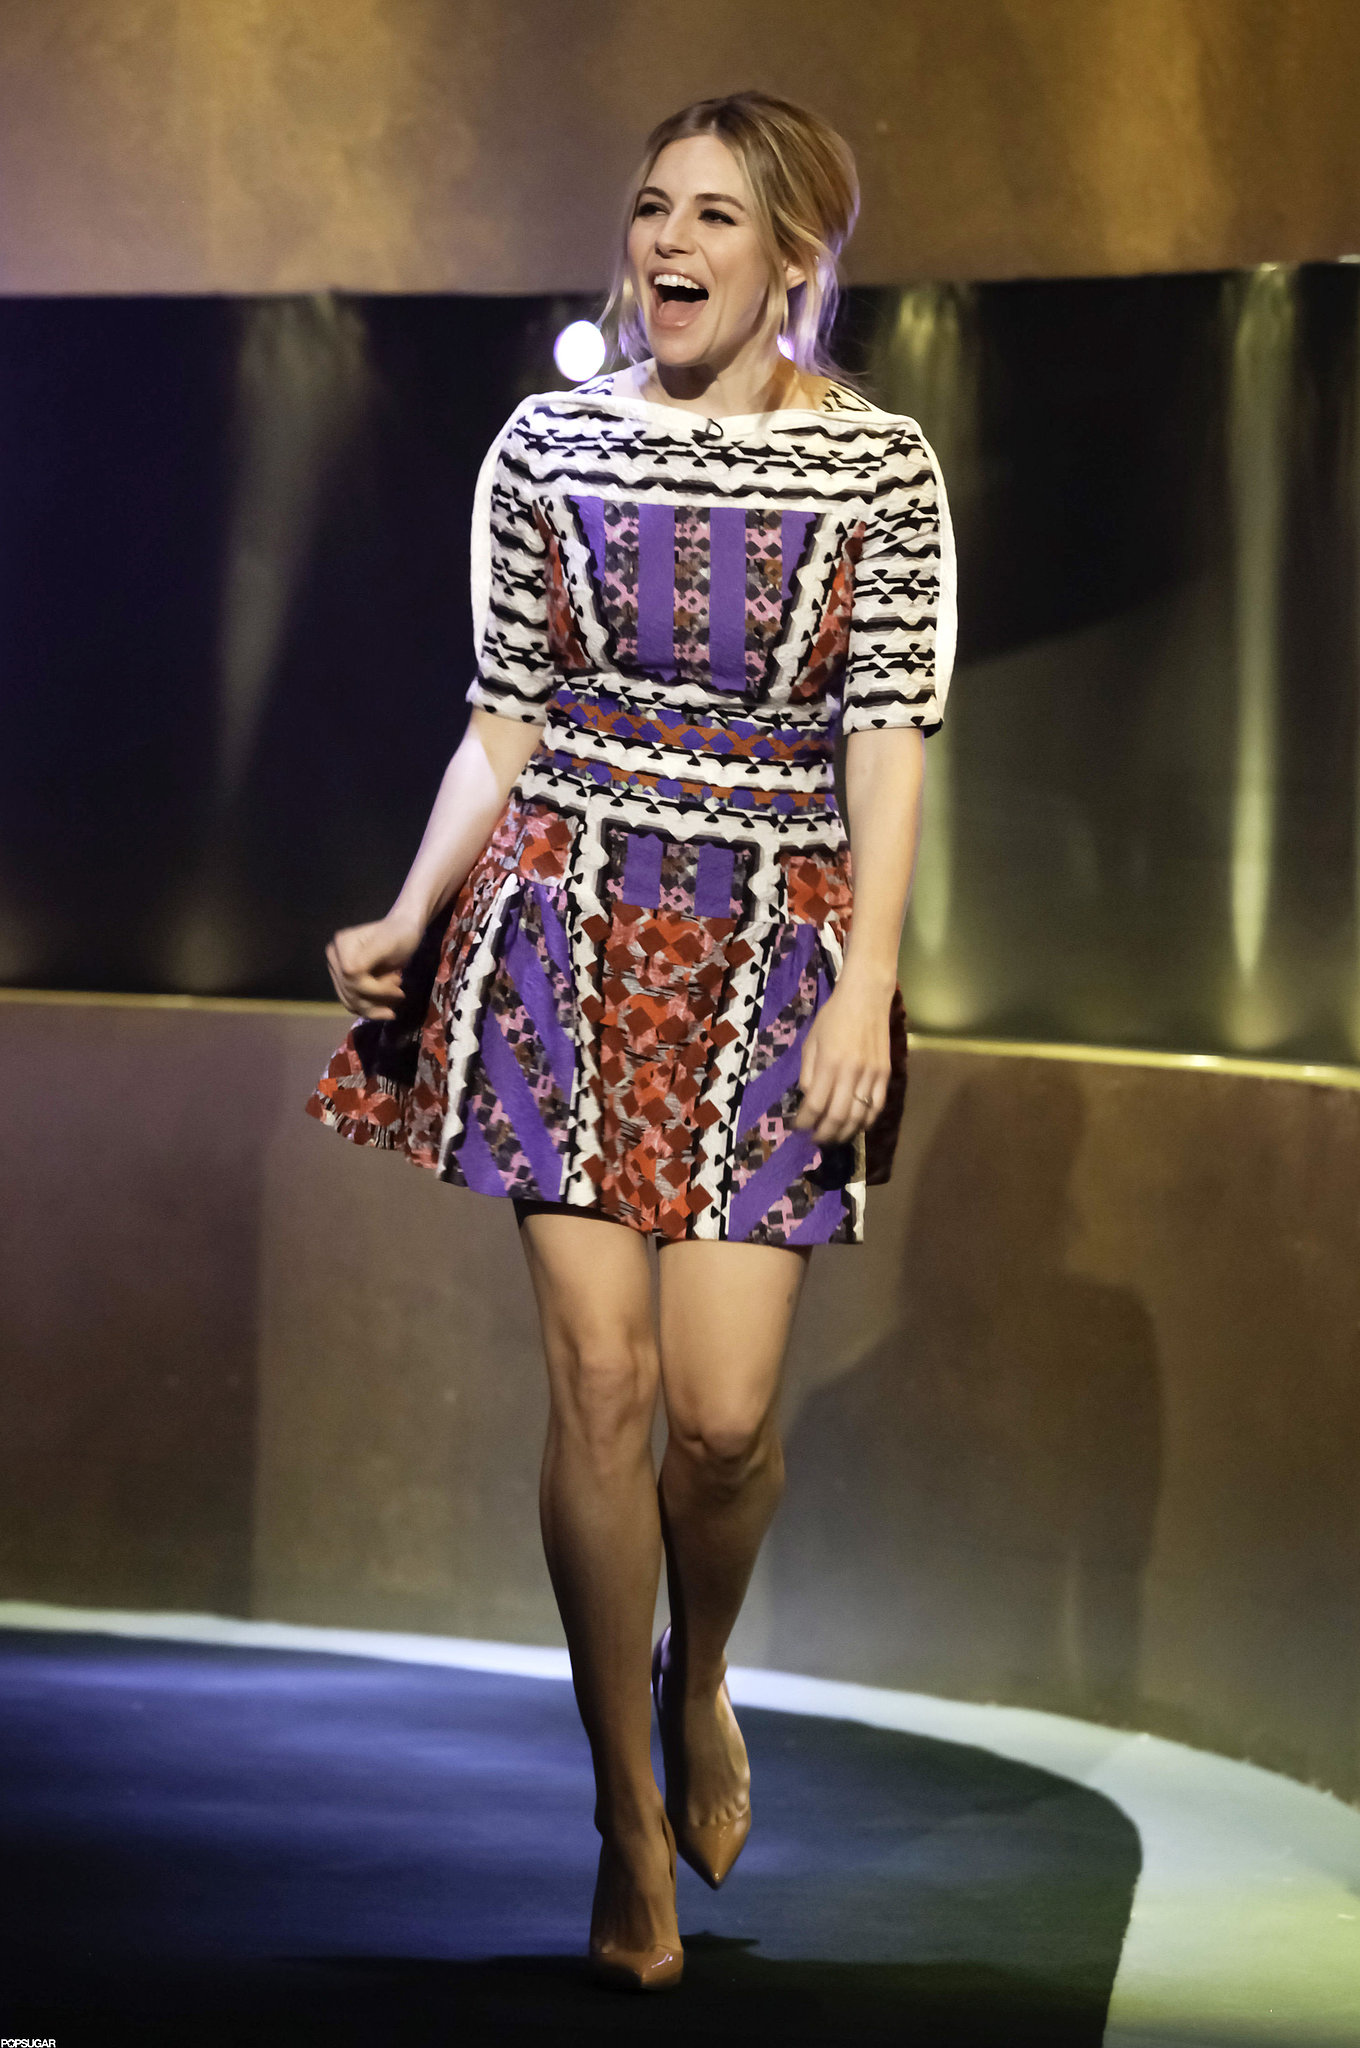 She worked a colorful Peter Pilotto dress for her appearance on The Jonathan Ross Show in December 2012.